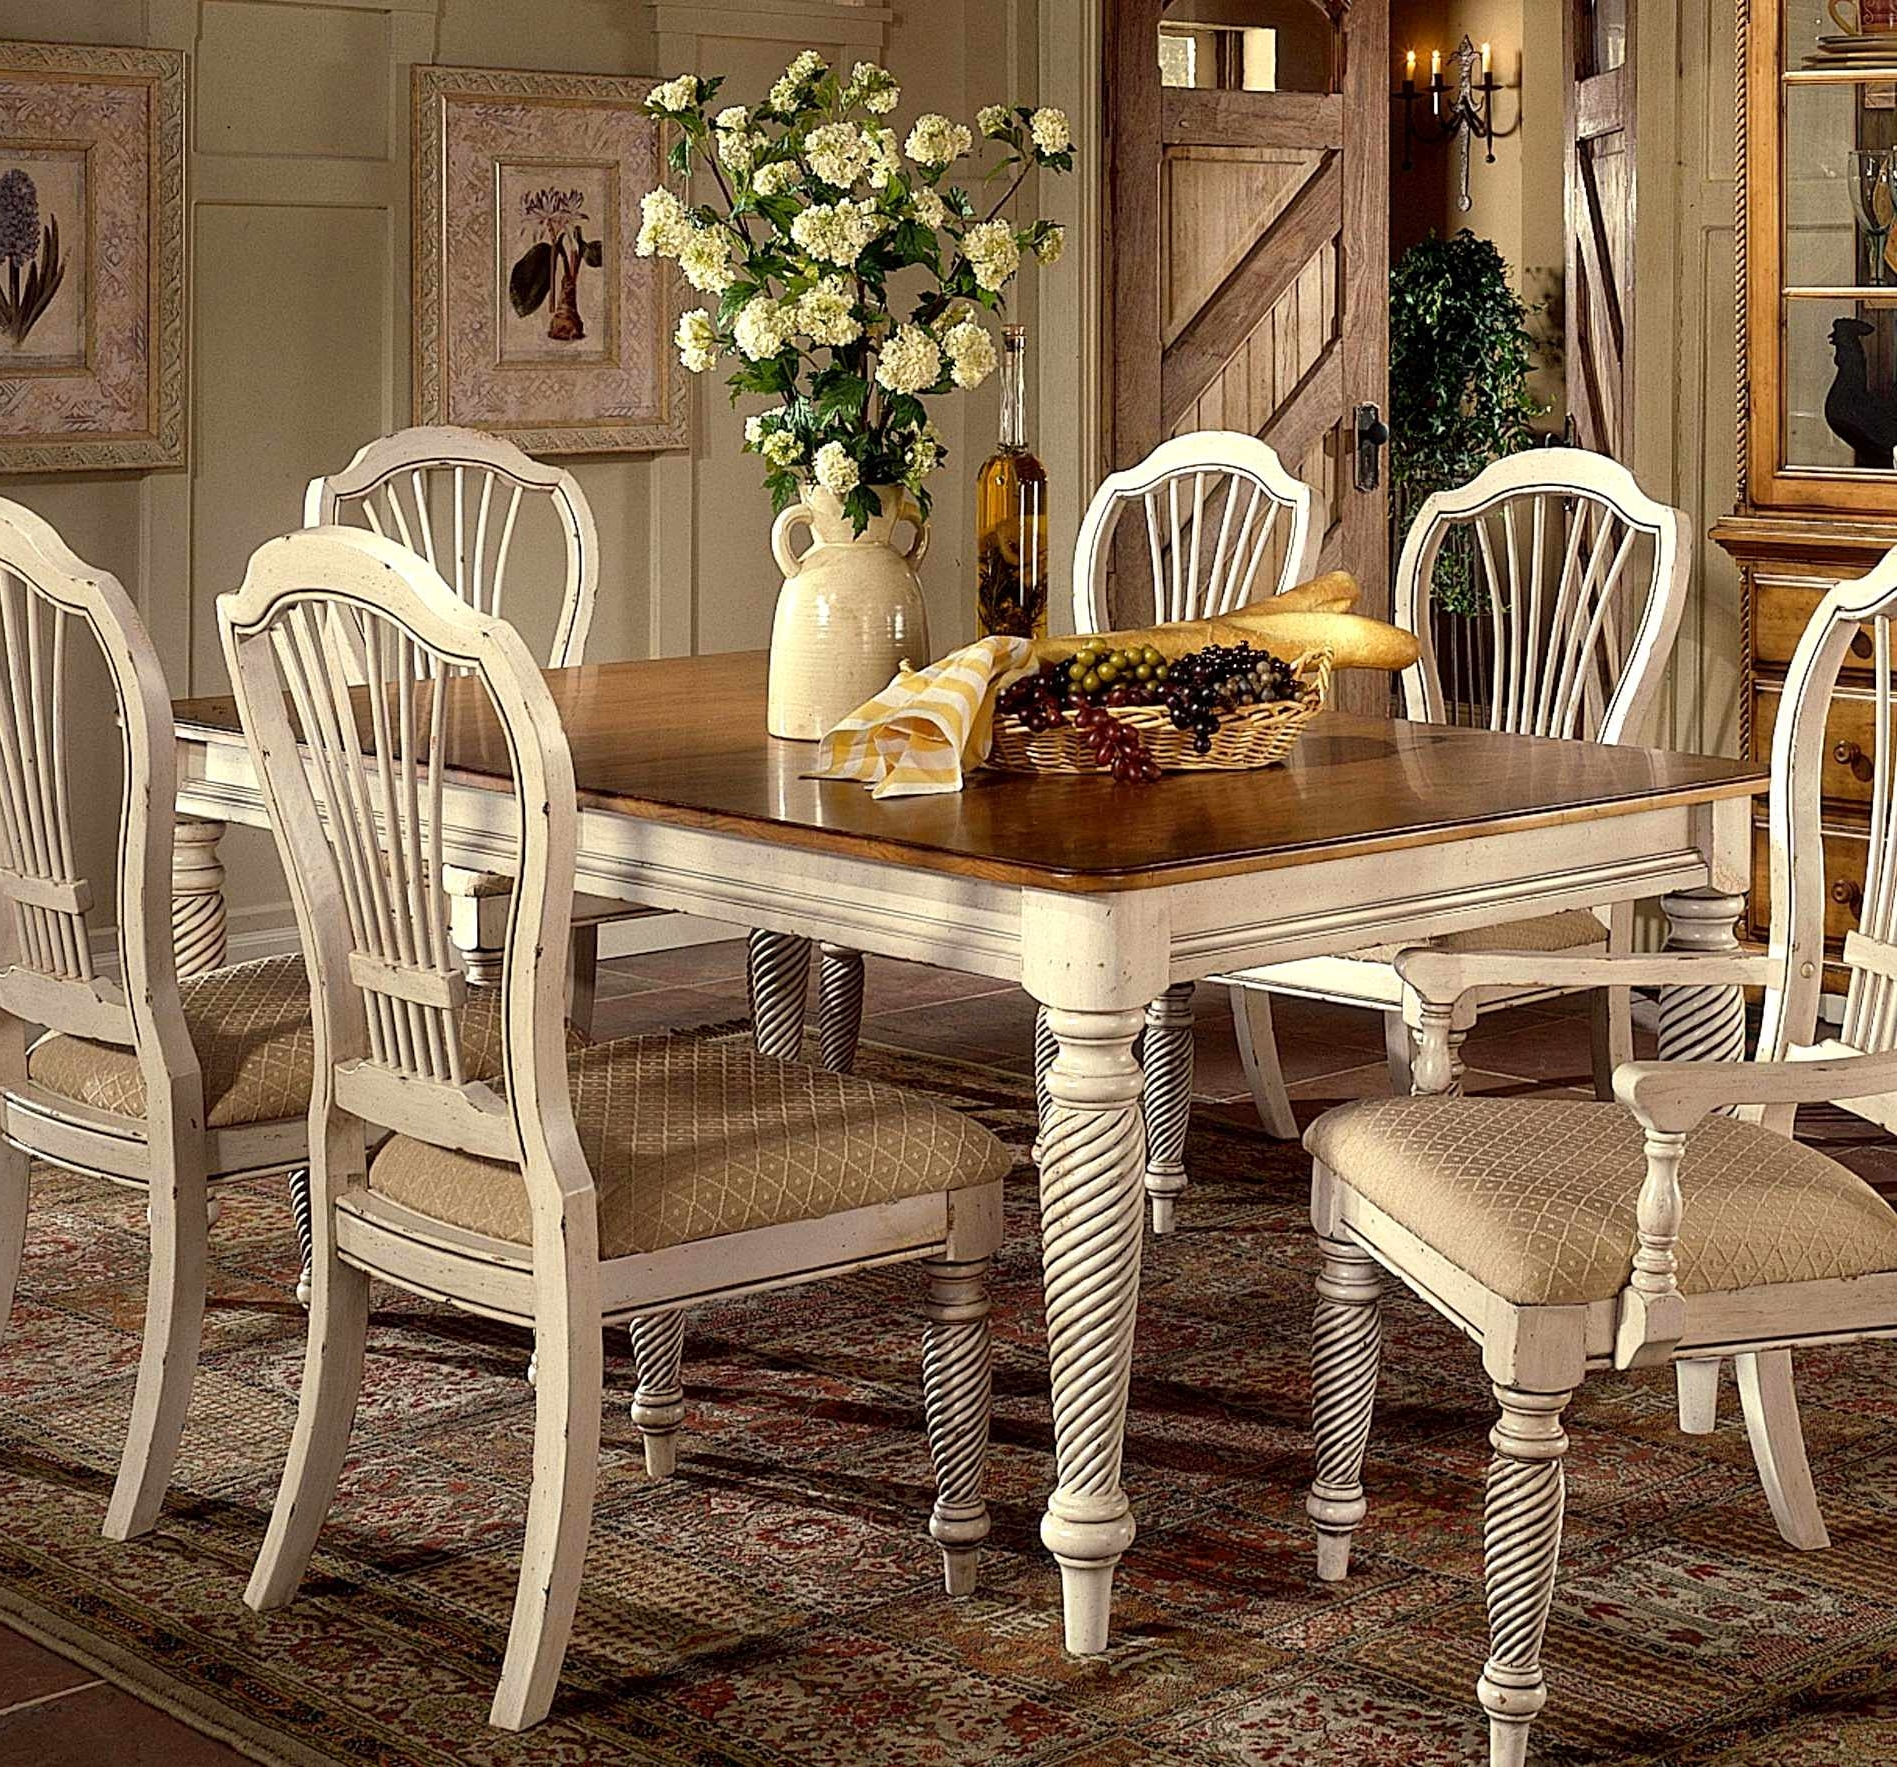 Fashionable Ebay Dining Suites In Charming Antique Furniture Dining Room Set – Esescatrina (View 16 of 25)